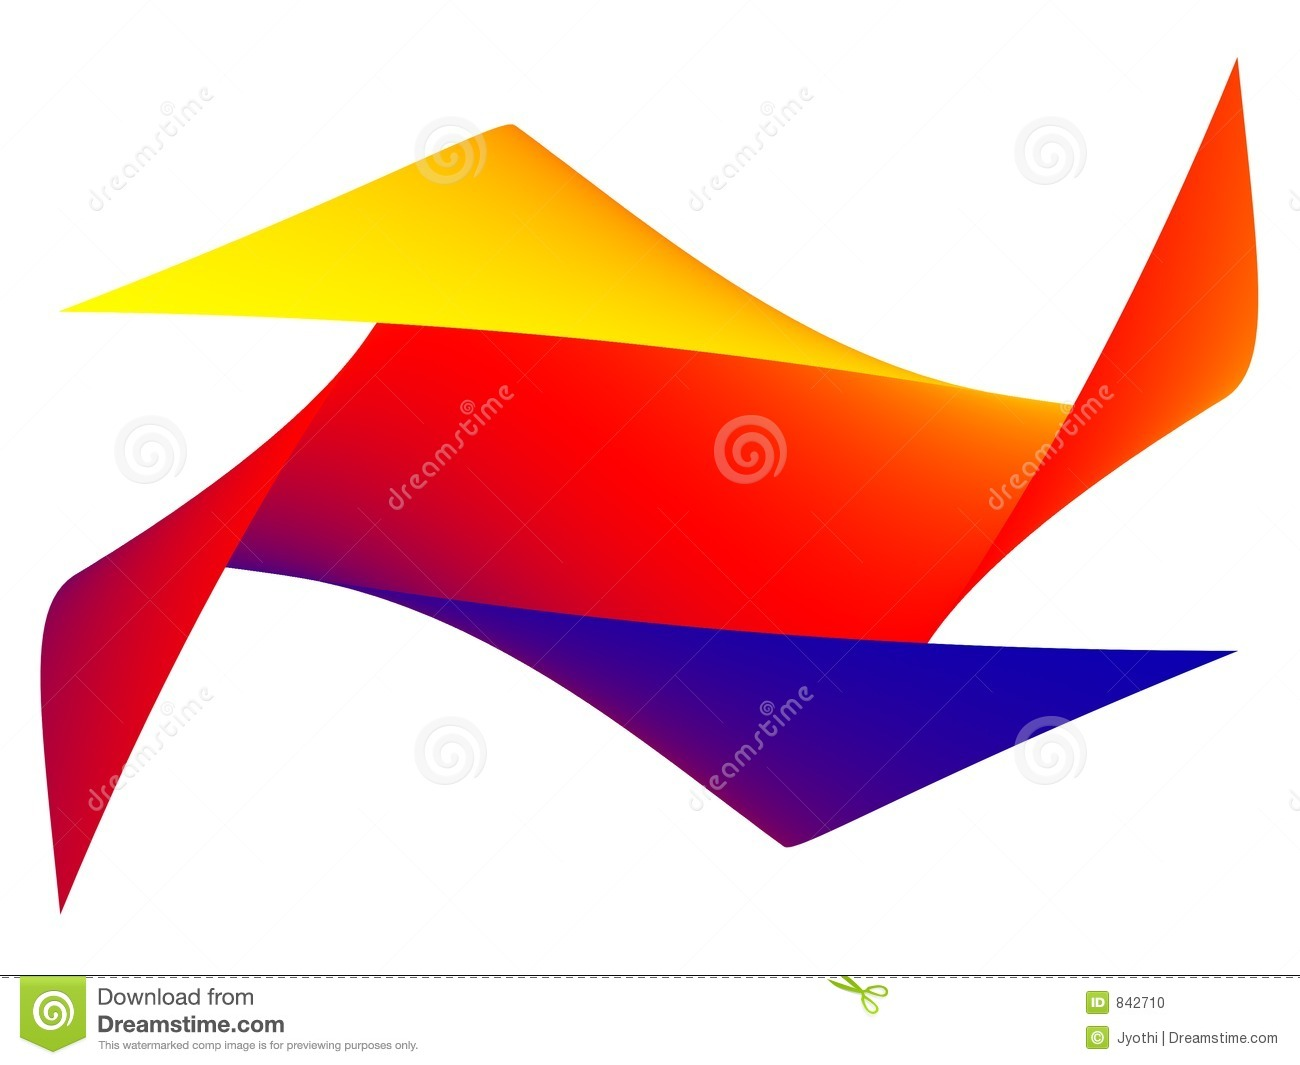 Paper folding craft stock illustration image of colorful for Craft work with paper folding